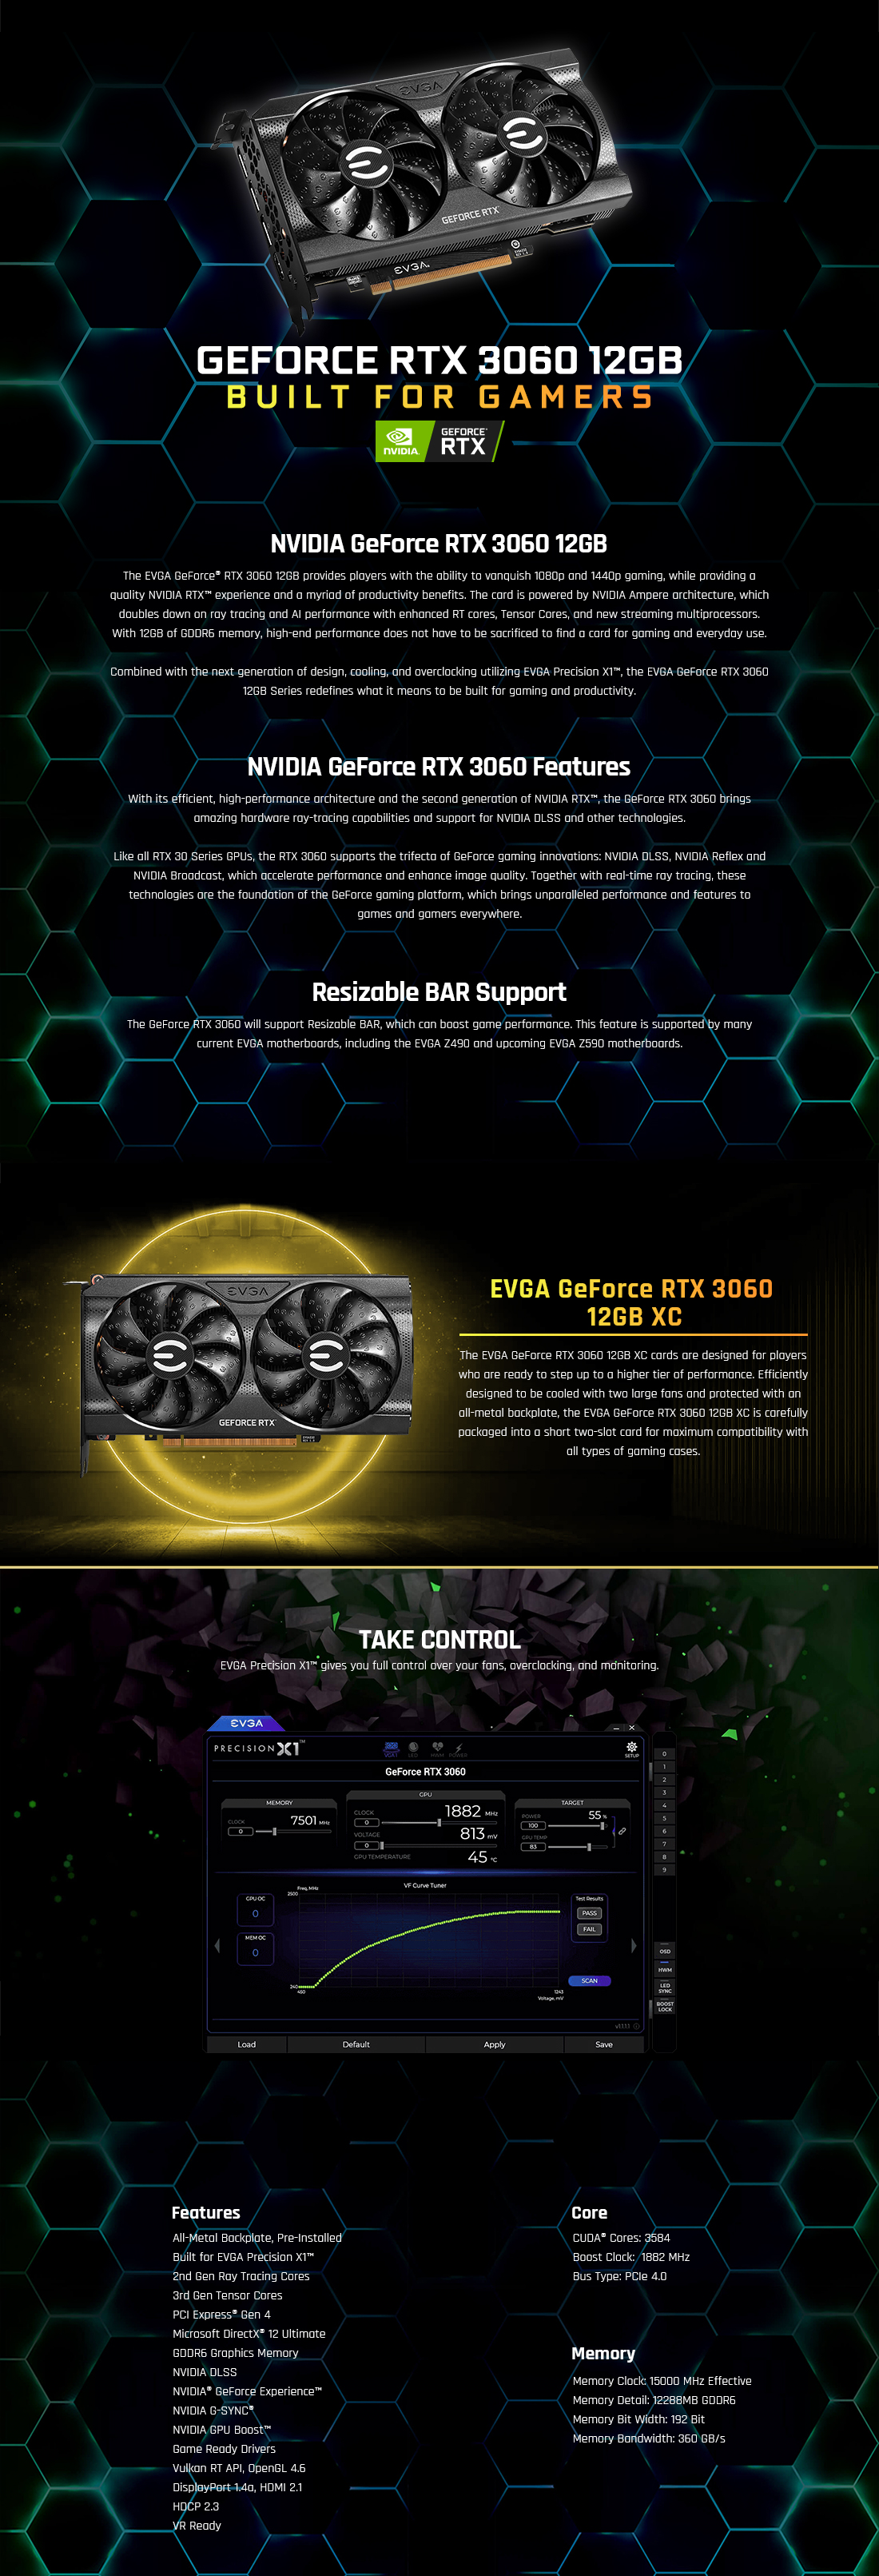 A large marketing image providing additional information about the product eVGA GeForce RTX 3060 XC 12G GDDR6 - Additional alt info not provided